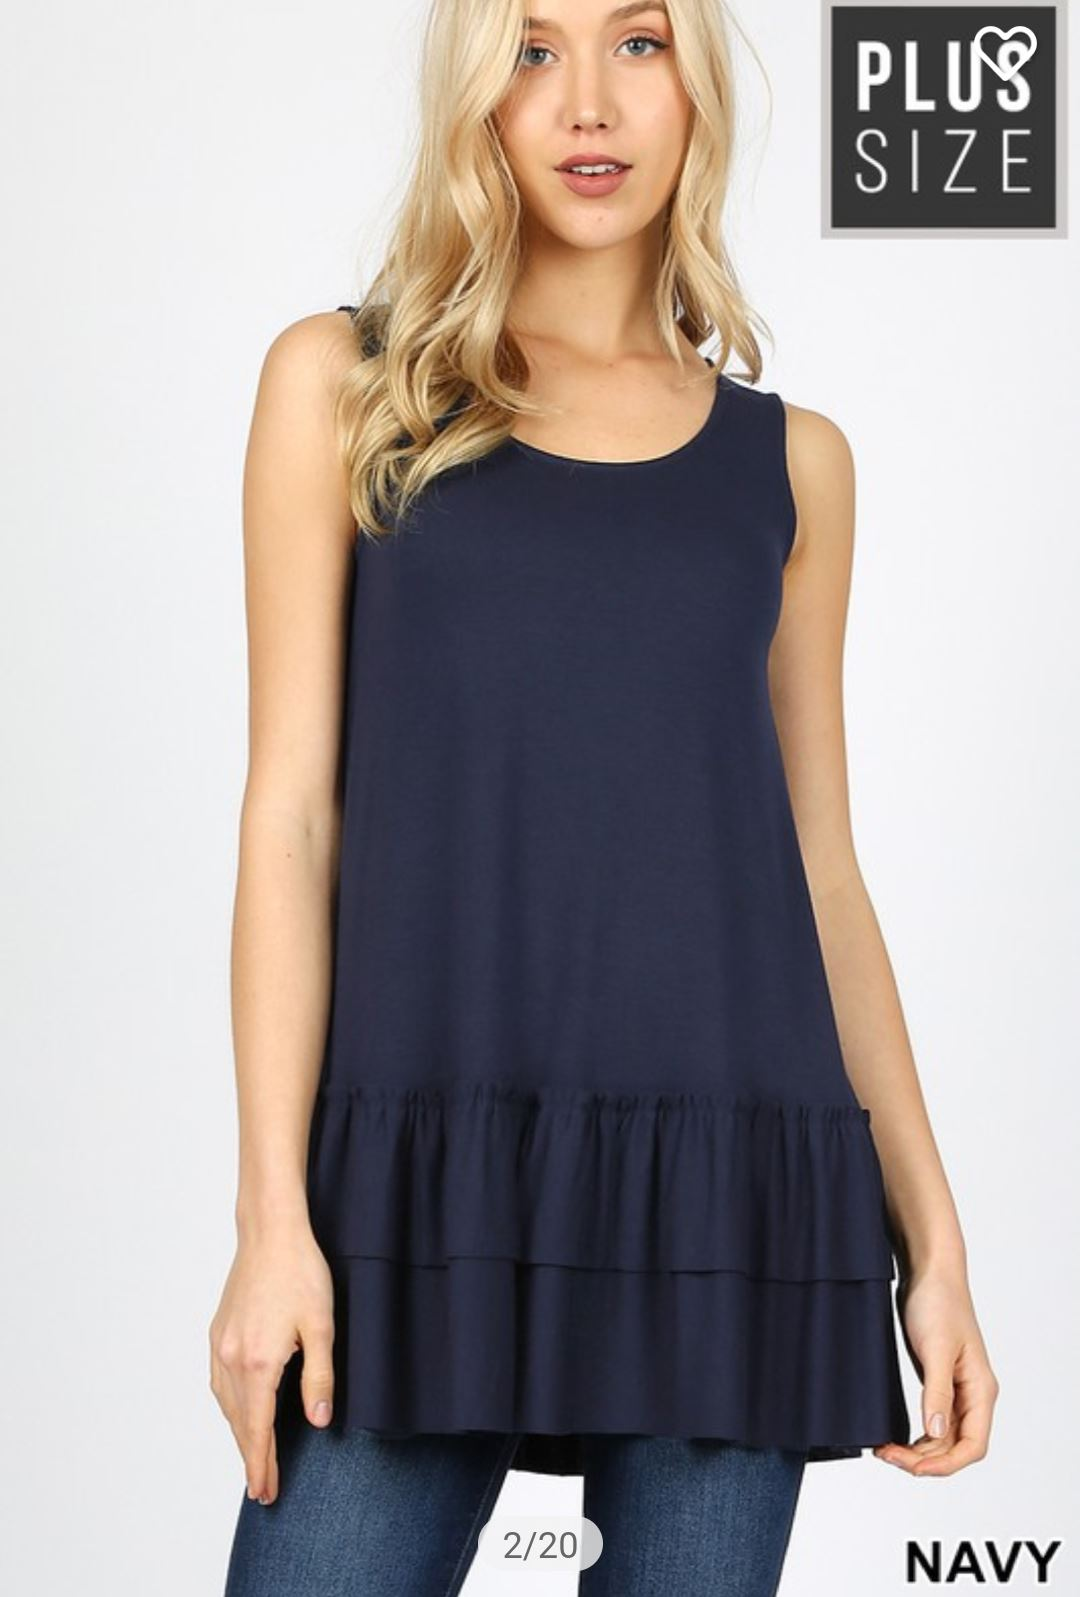 Wide Strap Tank w/Ruffle Bottom (lots of colors!) tank zenana